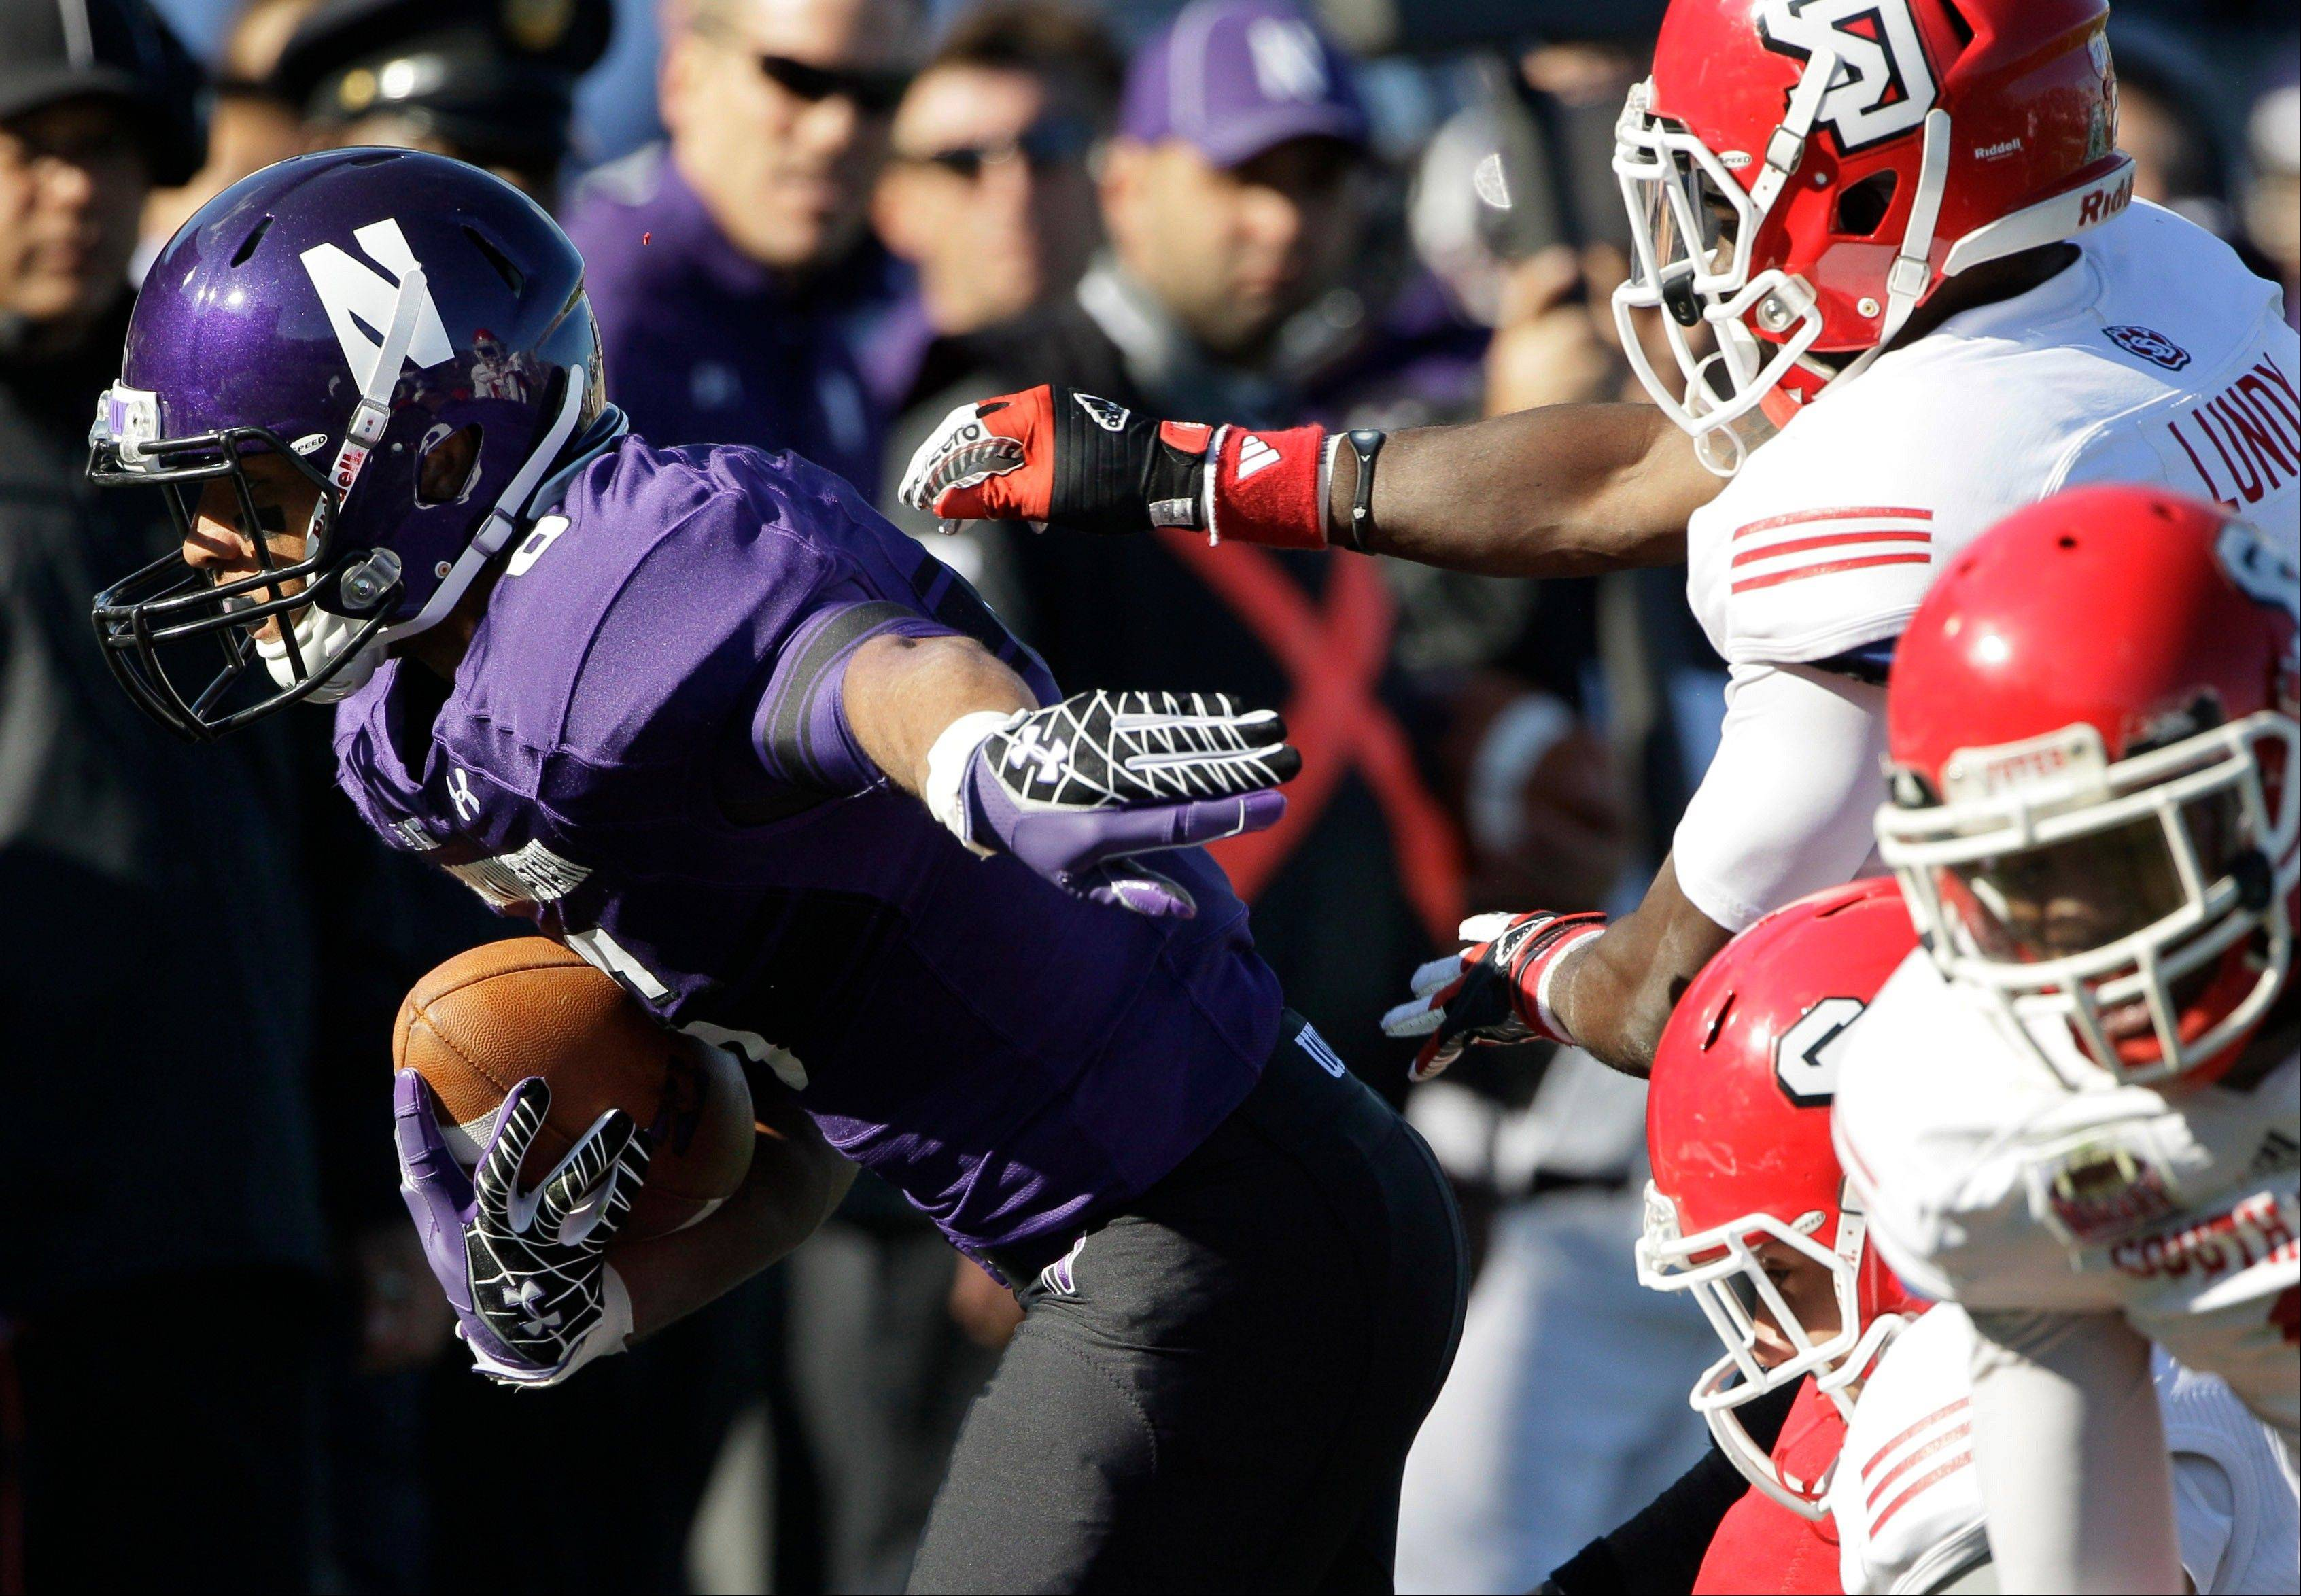 Northwestern wide receiver Tony Jones runs past South Dakota defensive back Chris Lundy during last Saturday's game in Evanston.